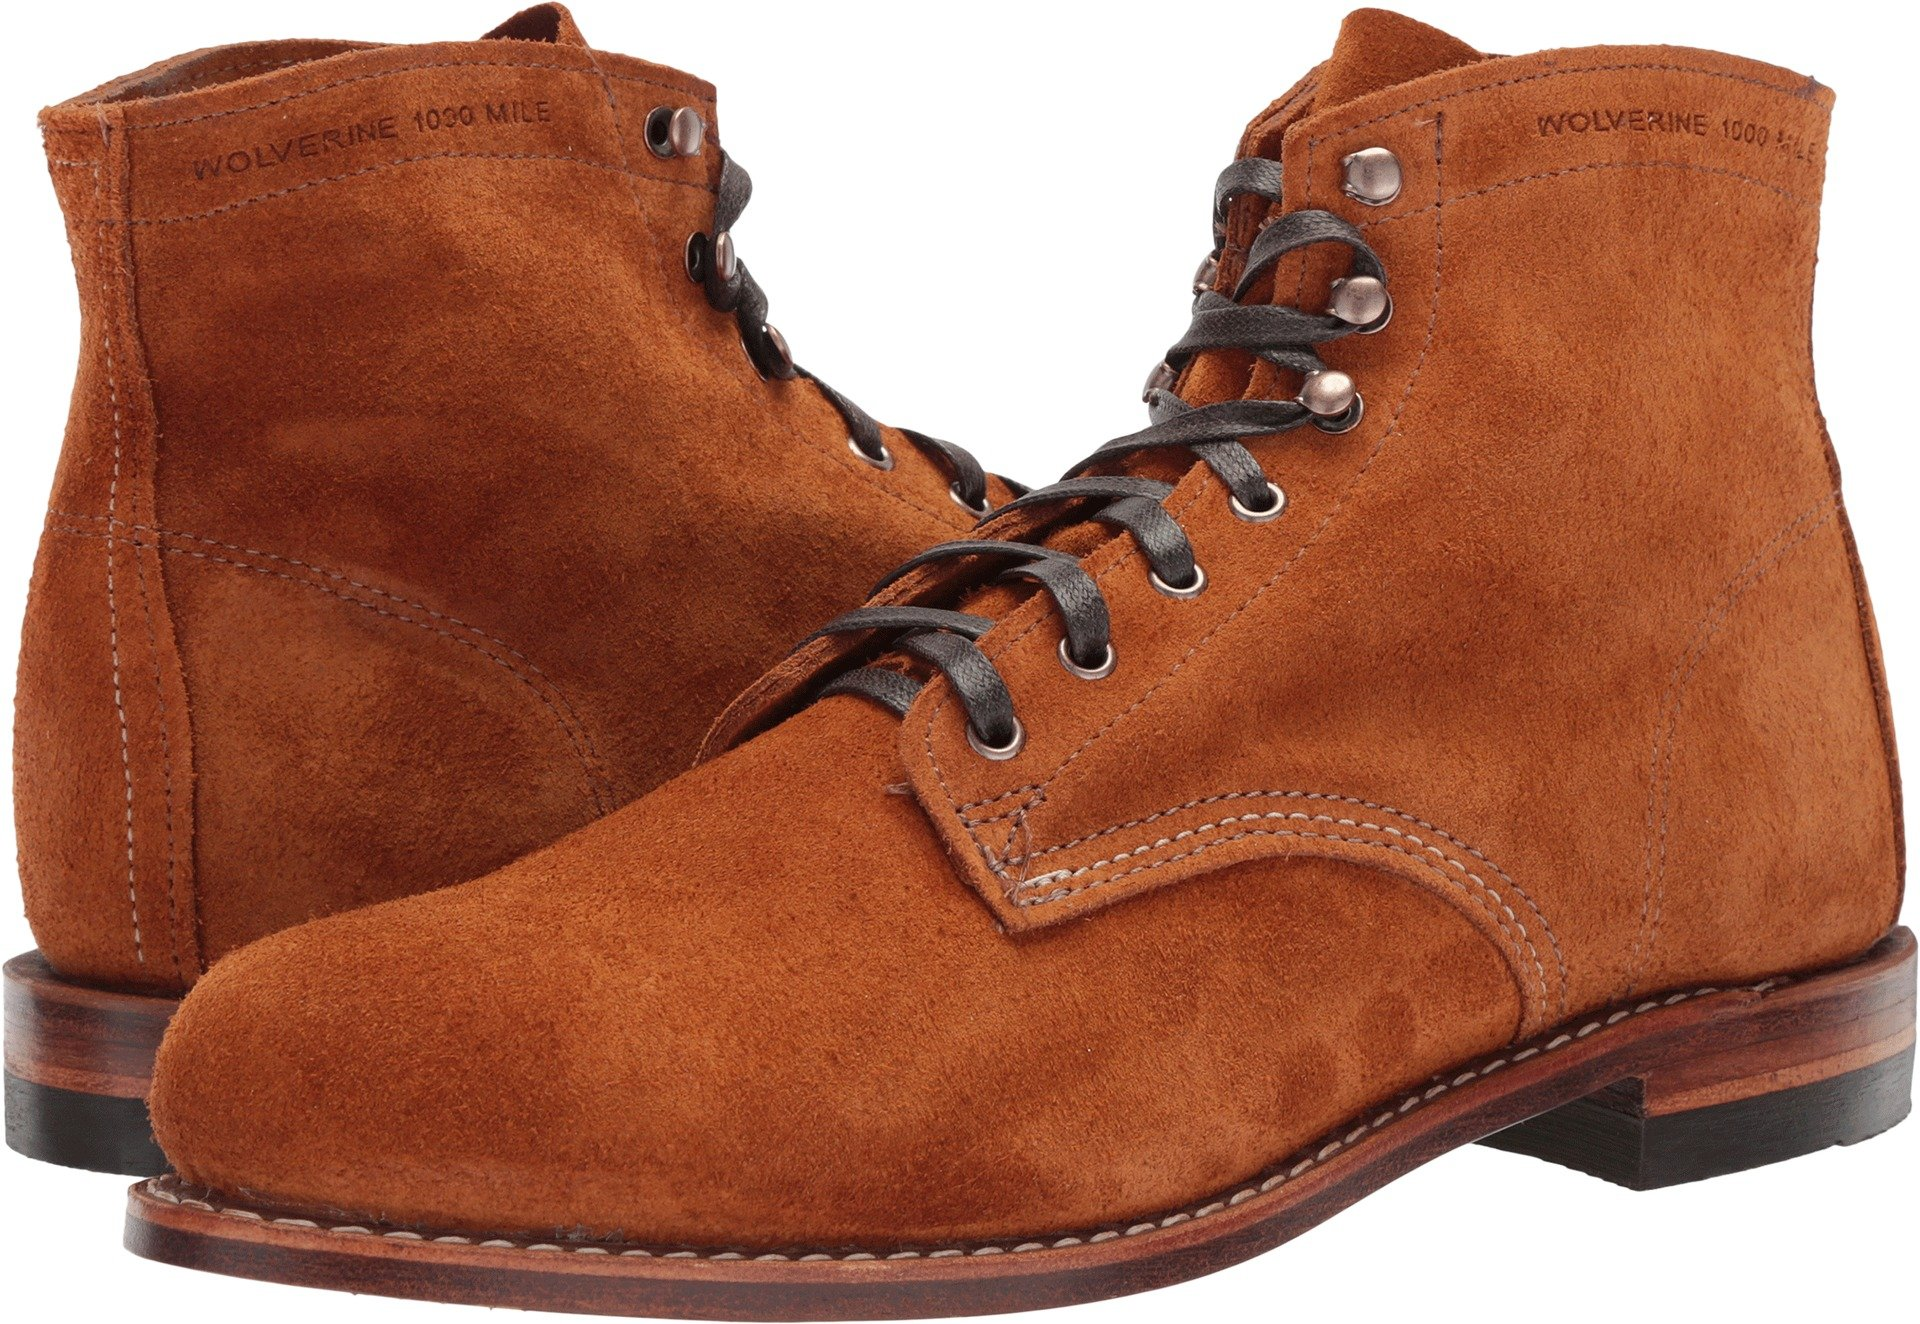 Wolverine Men's Original 1000 Mile 6'' Boot Amber Suede 8 M US by Wolverine (Image #1)